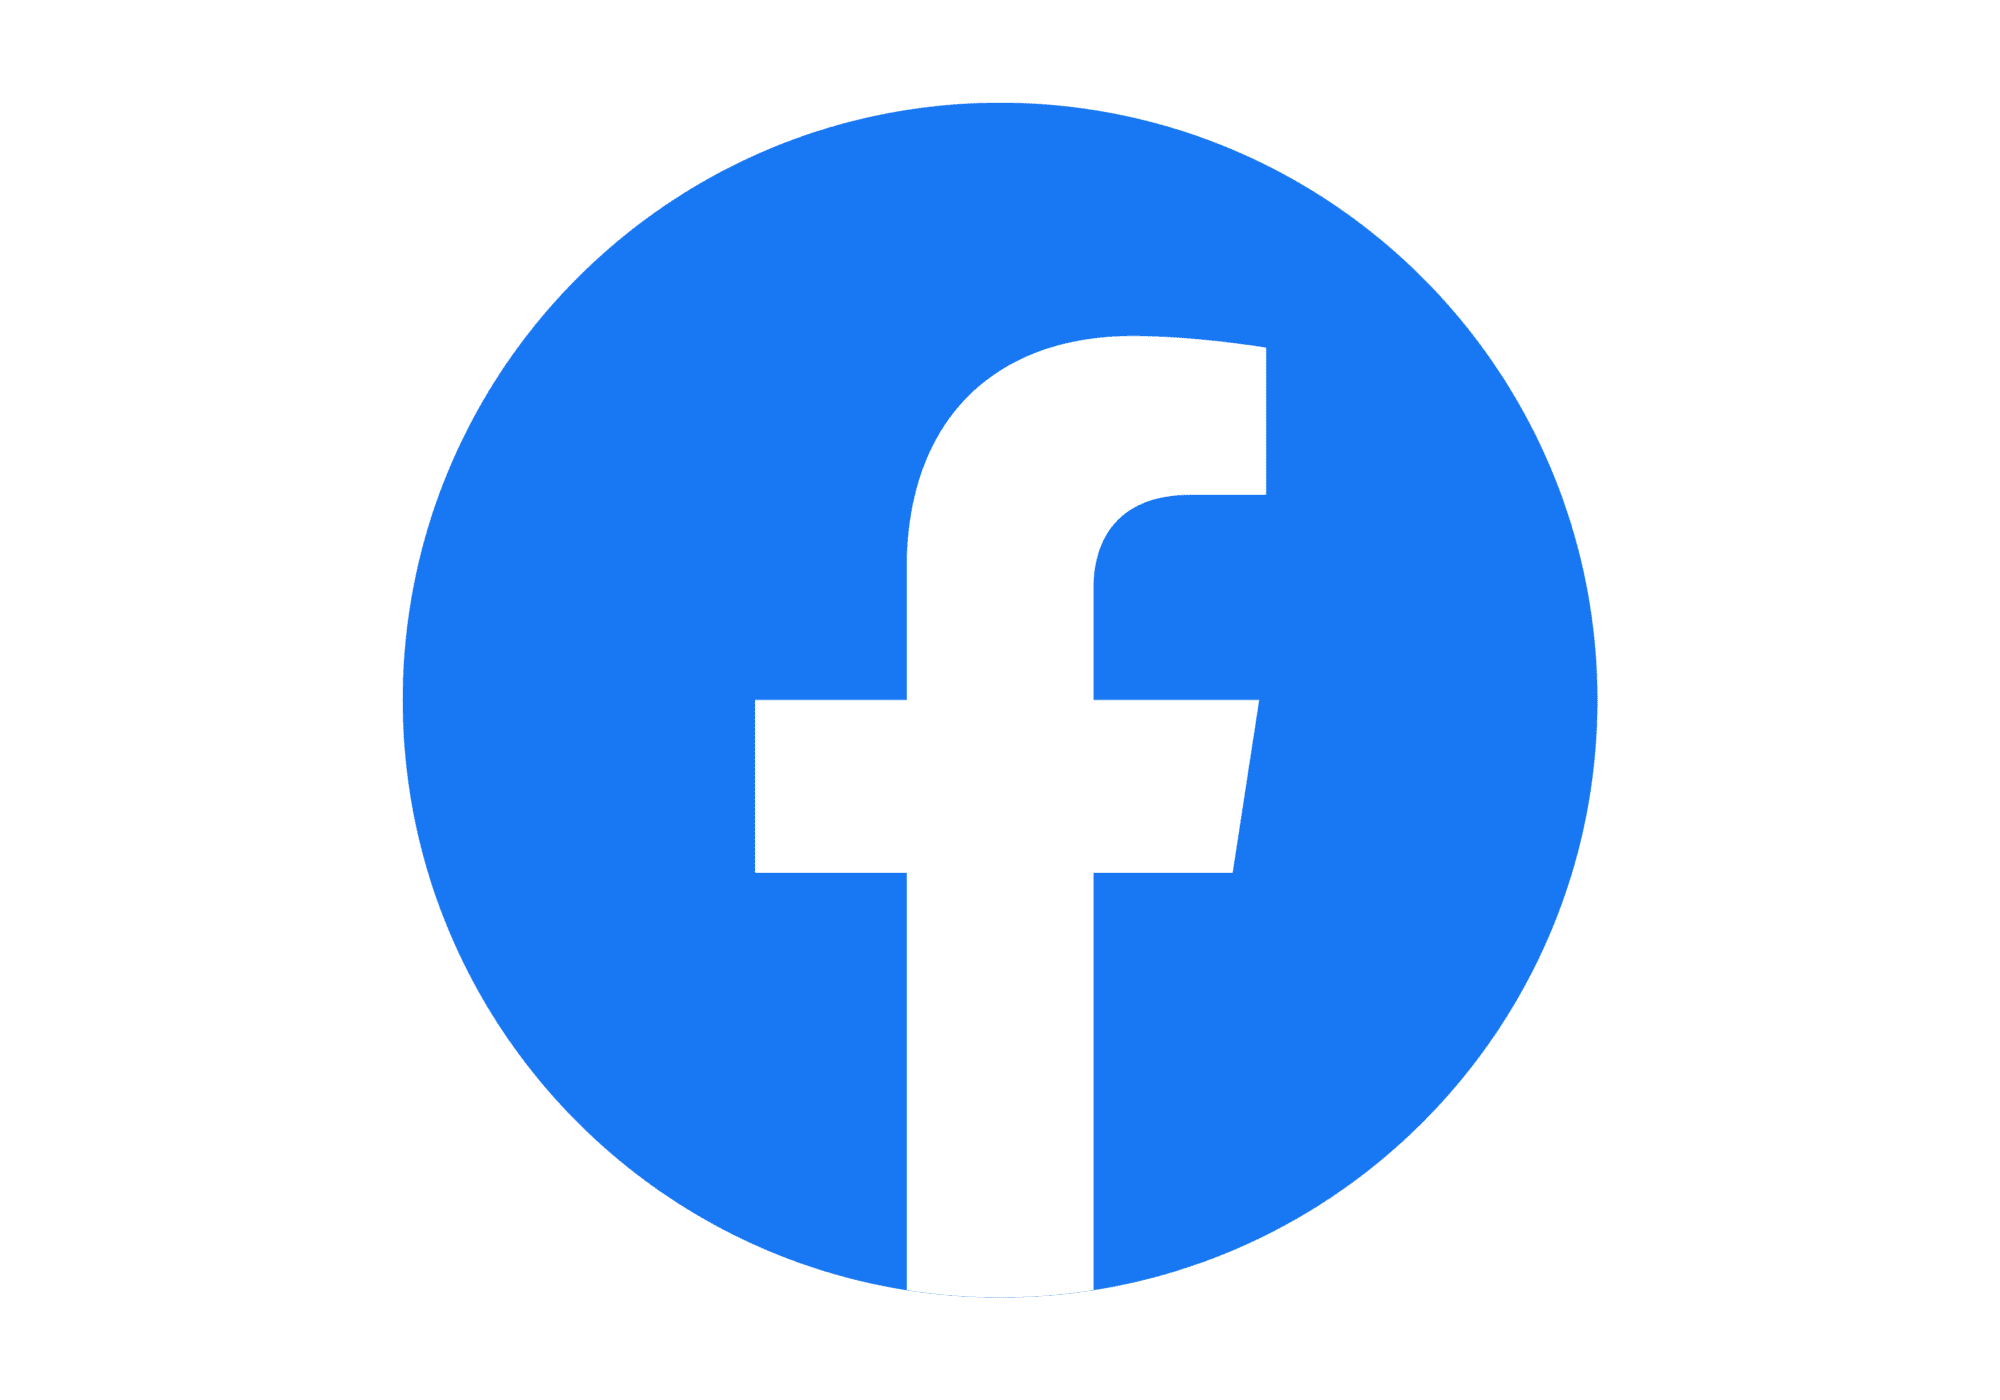 facebook logo and symbol meaning history png facebook logo and symbol meaning